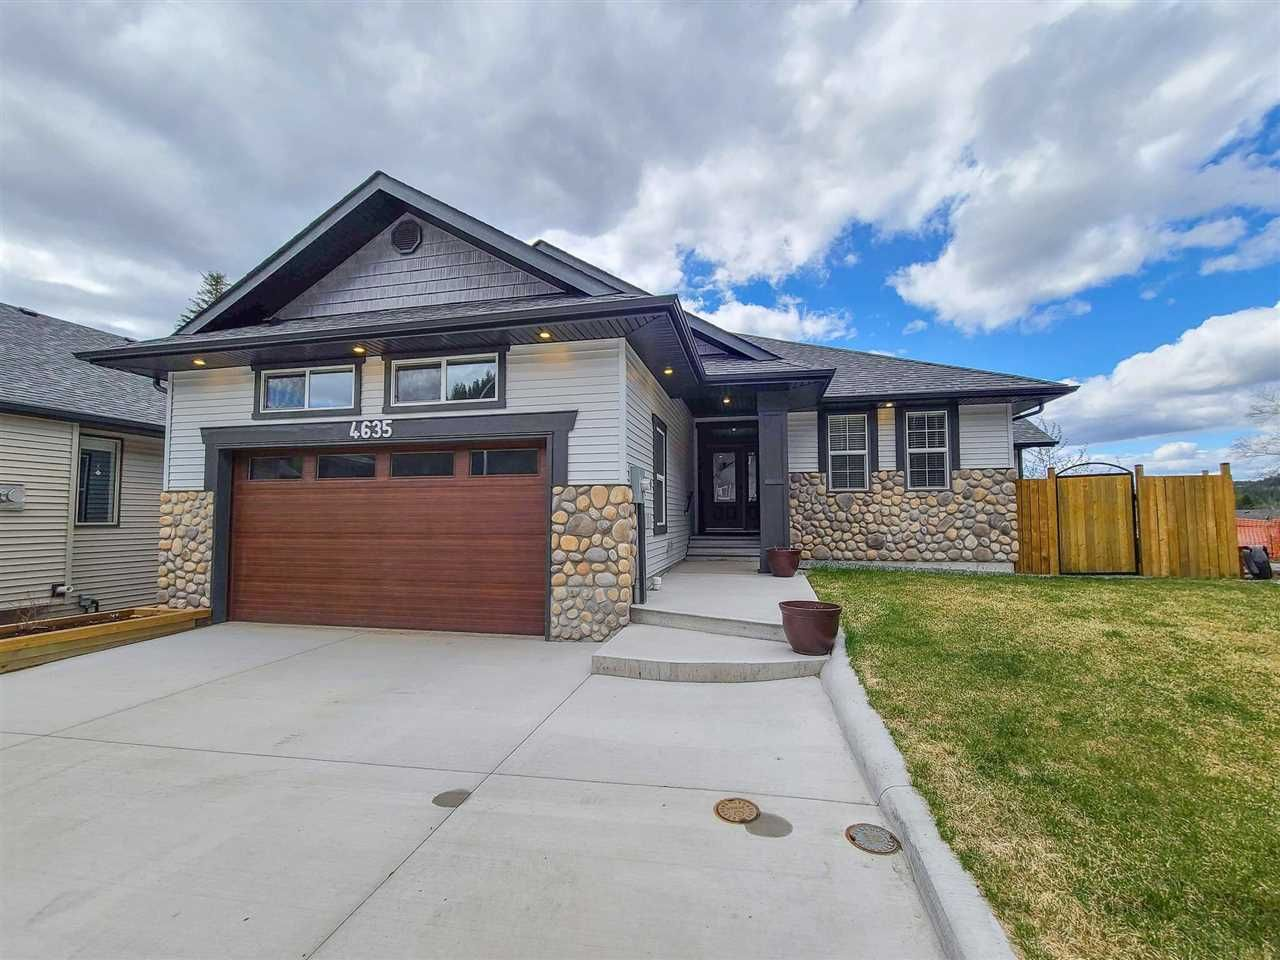 Main Photo: 4635 AVTAR Place in Prince George: North Meadows House for sale (PG City North (Zone 73))  : MLS®# R2577855